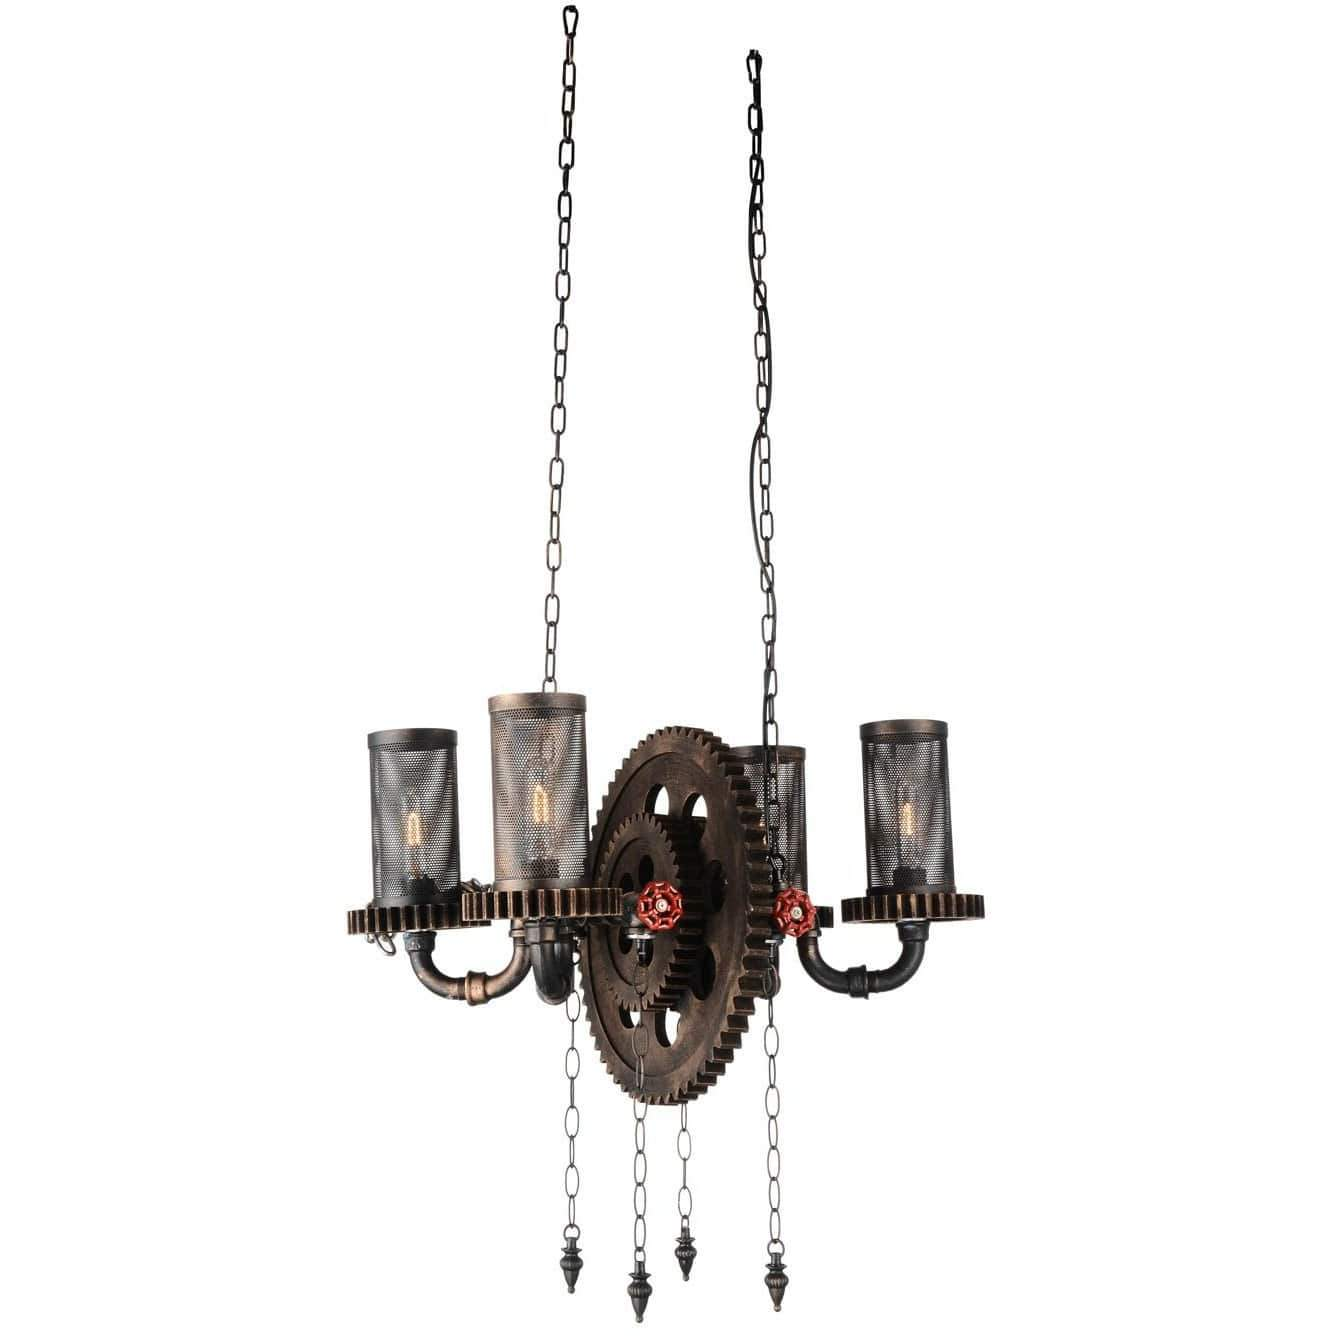 CWI Lighting Chandeliers Rust Manchi 4 Light Up Chandelier with Rust finish by CWI Lighting 9722P25-4-211